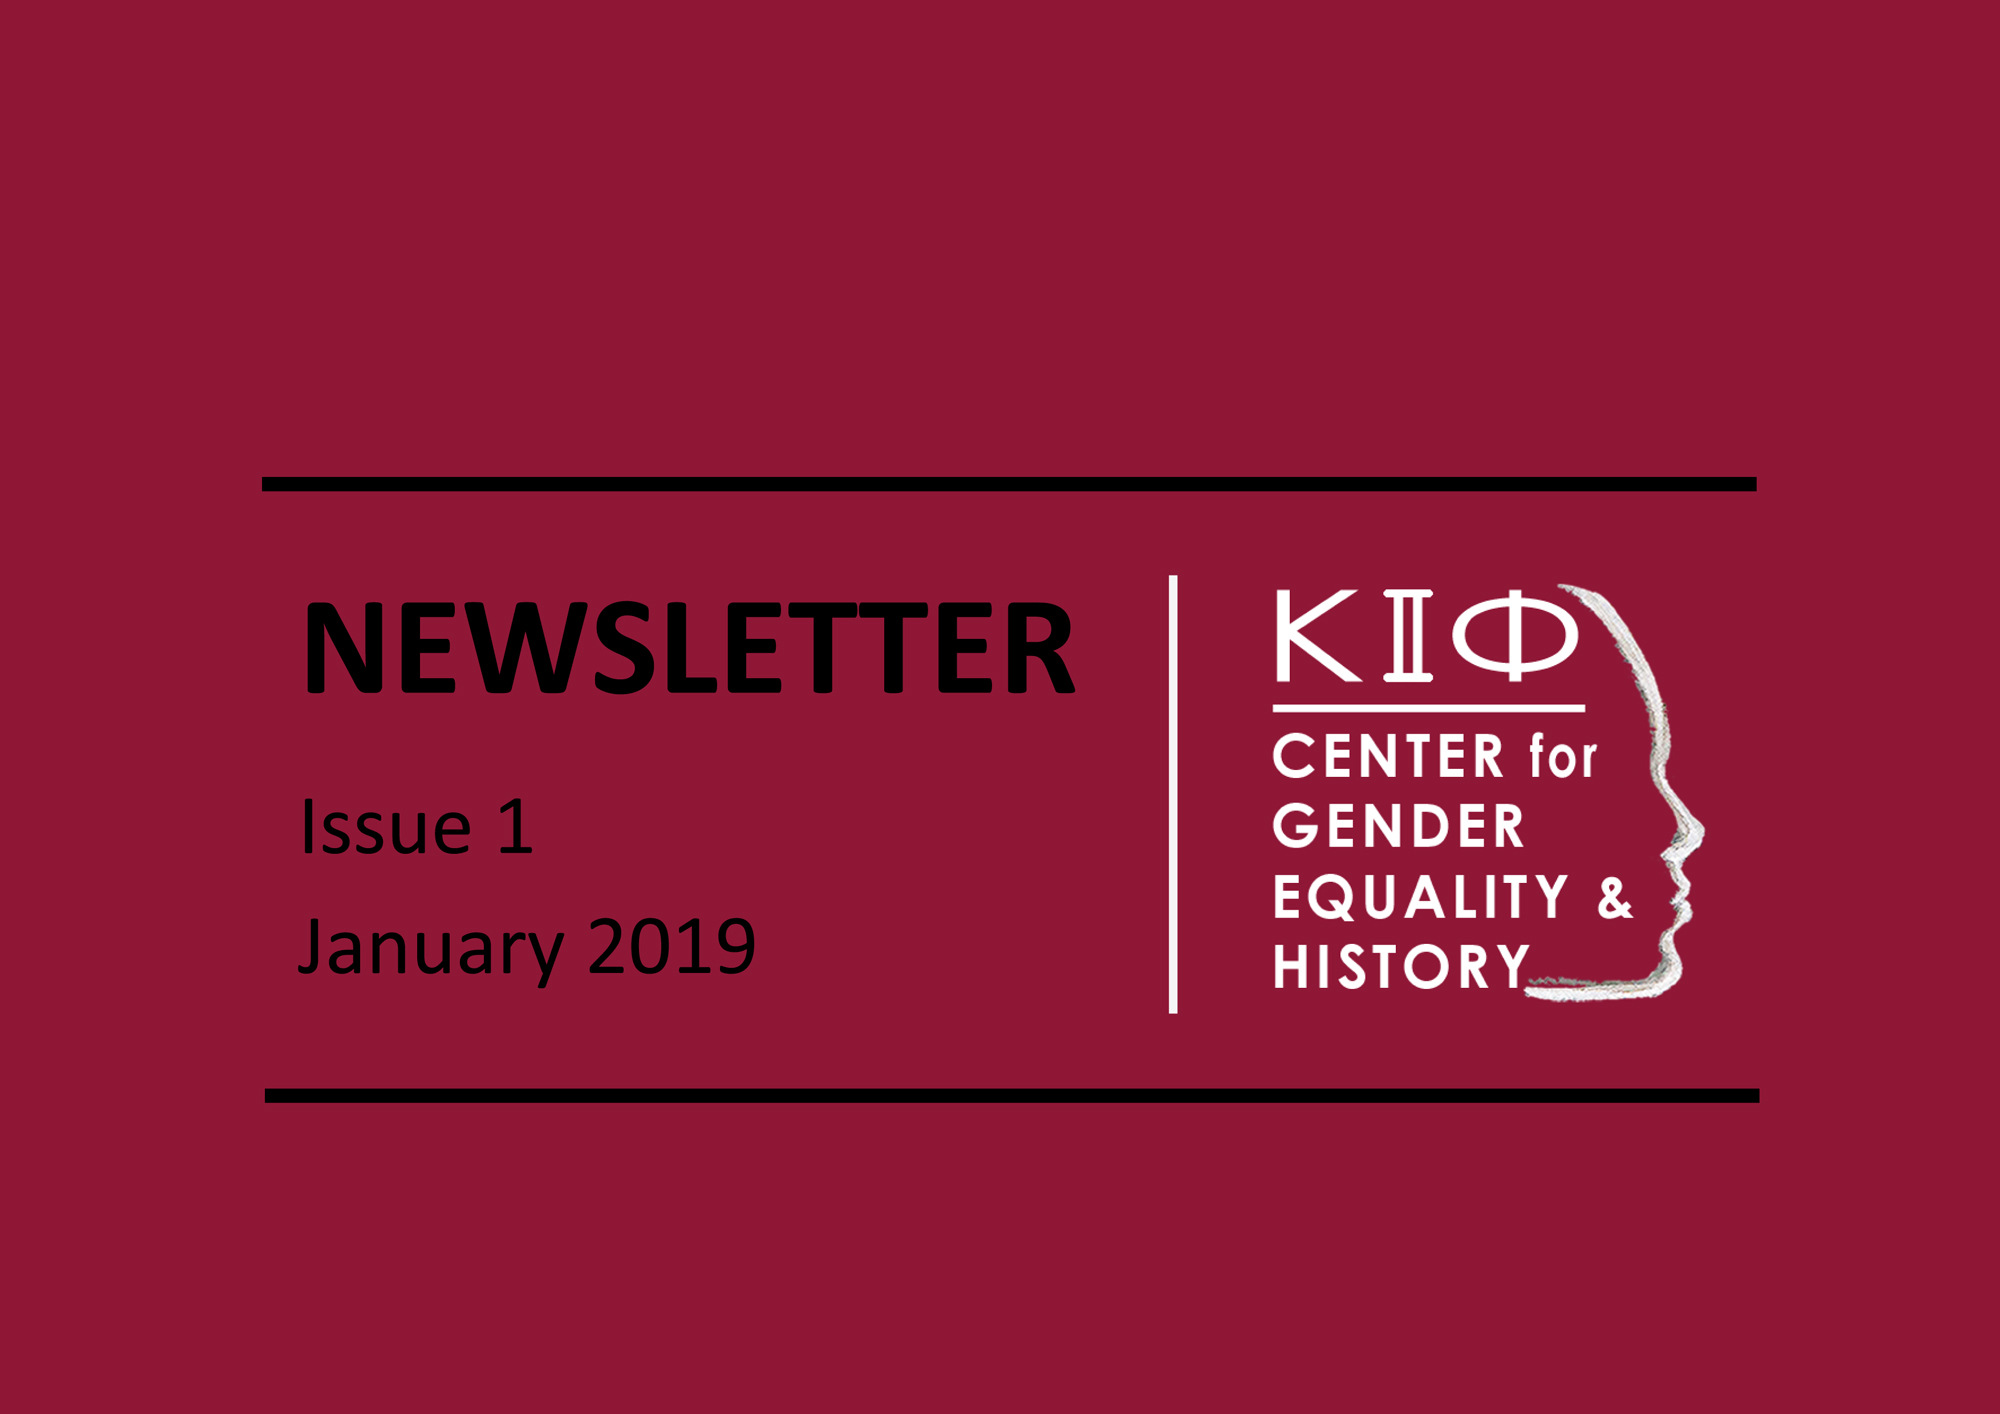 FIRST NEWSLETTER – Issue 1 – January 2019